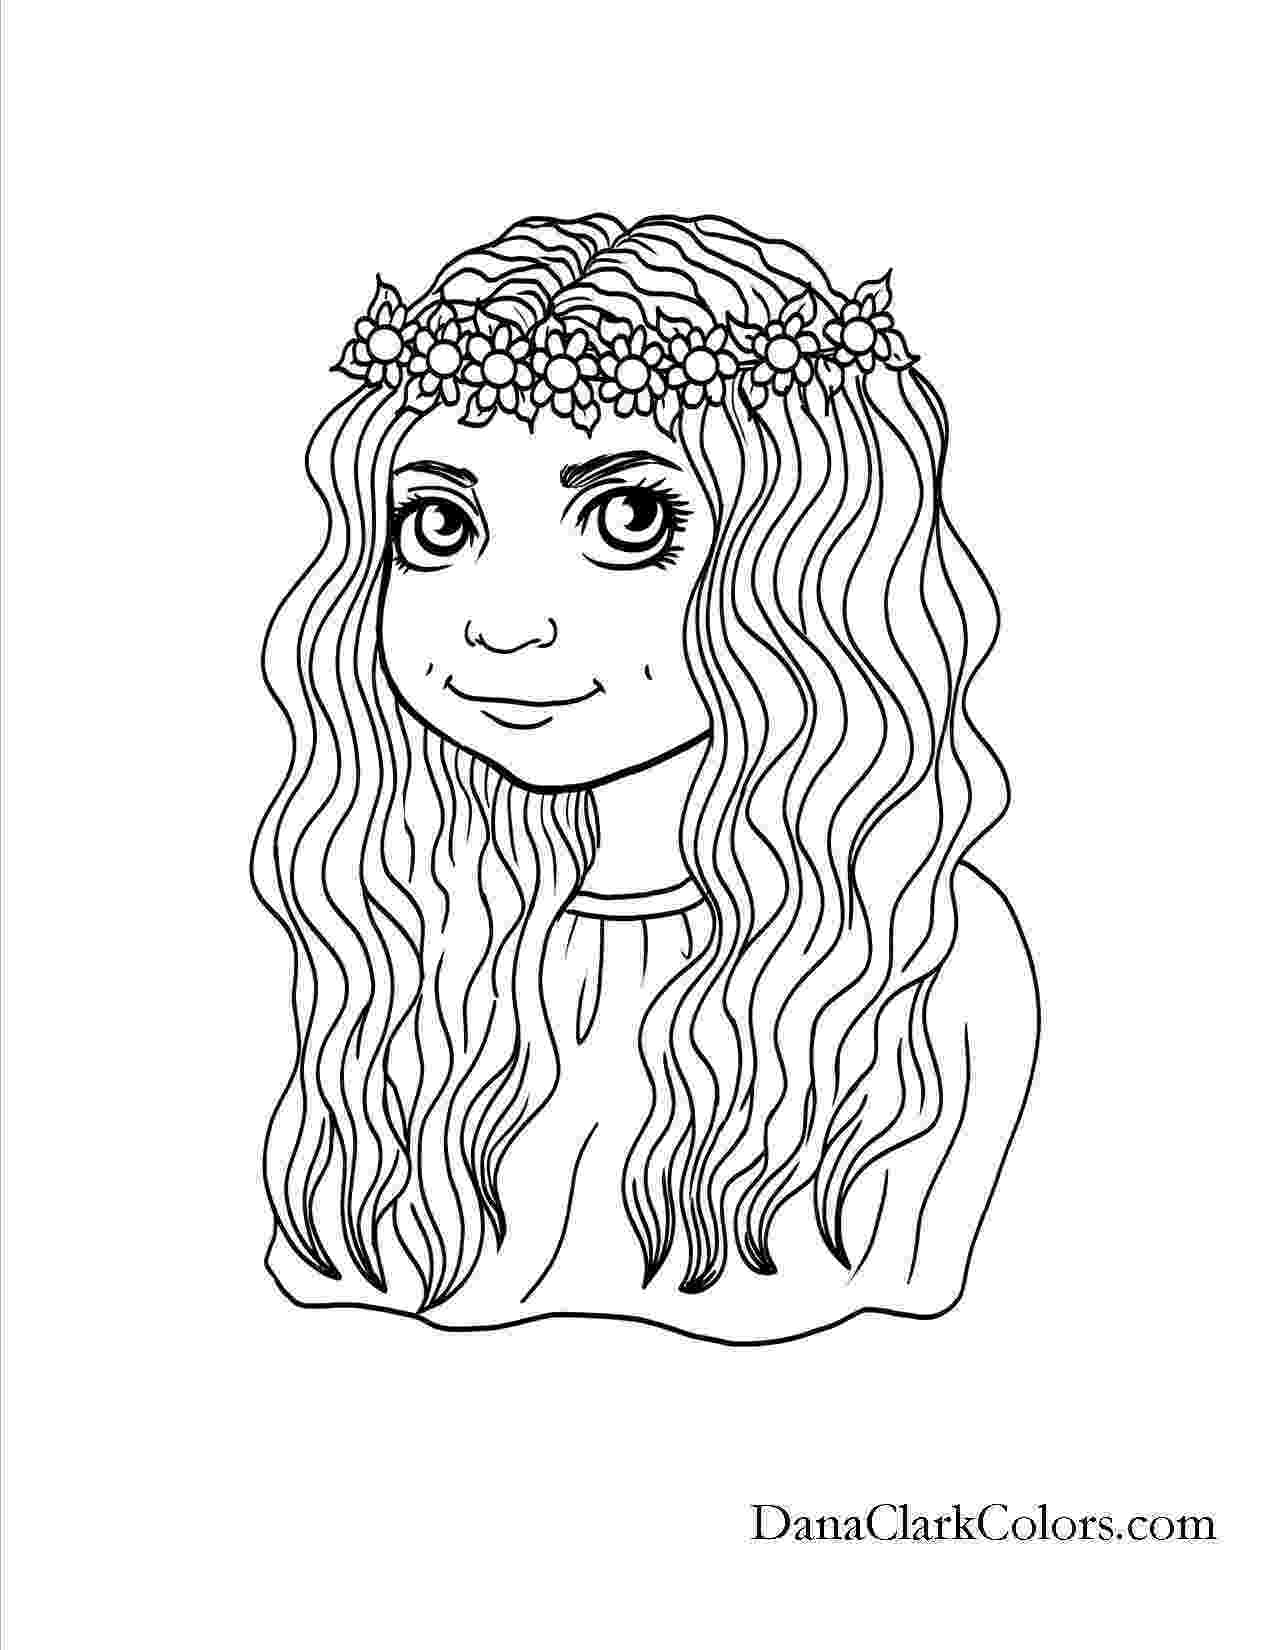 hairstyle coloring pages hairstyle coloring pages new hairstyles coloring pages coloring hairstyle pages